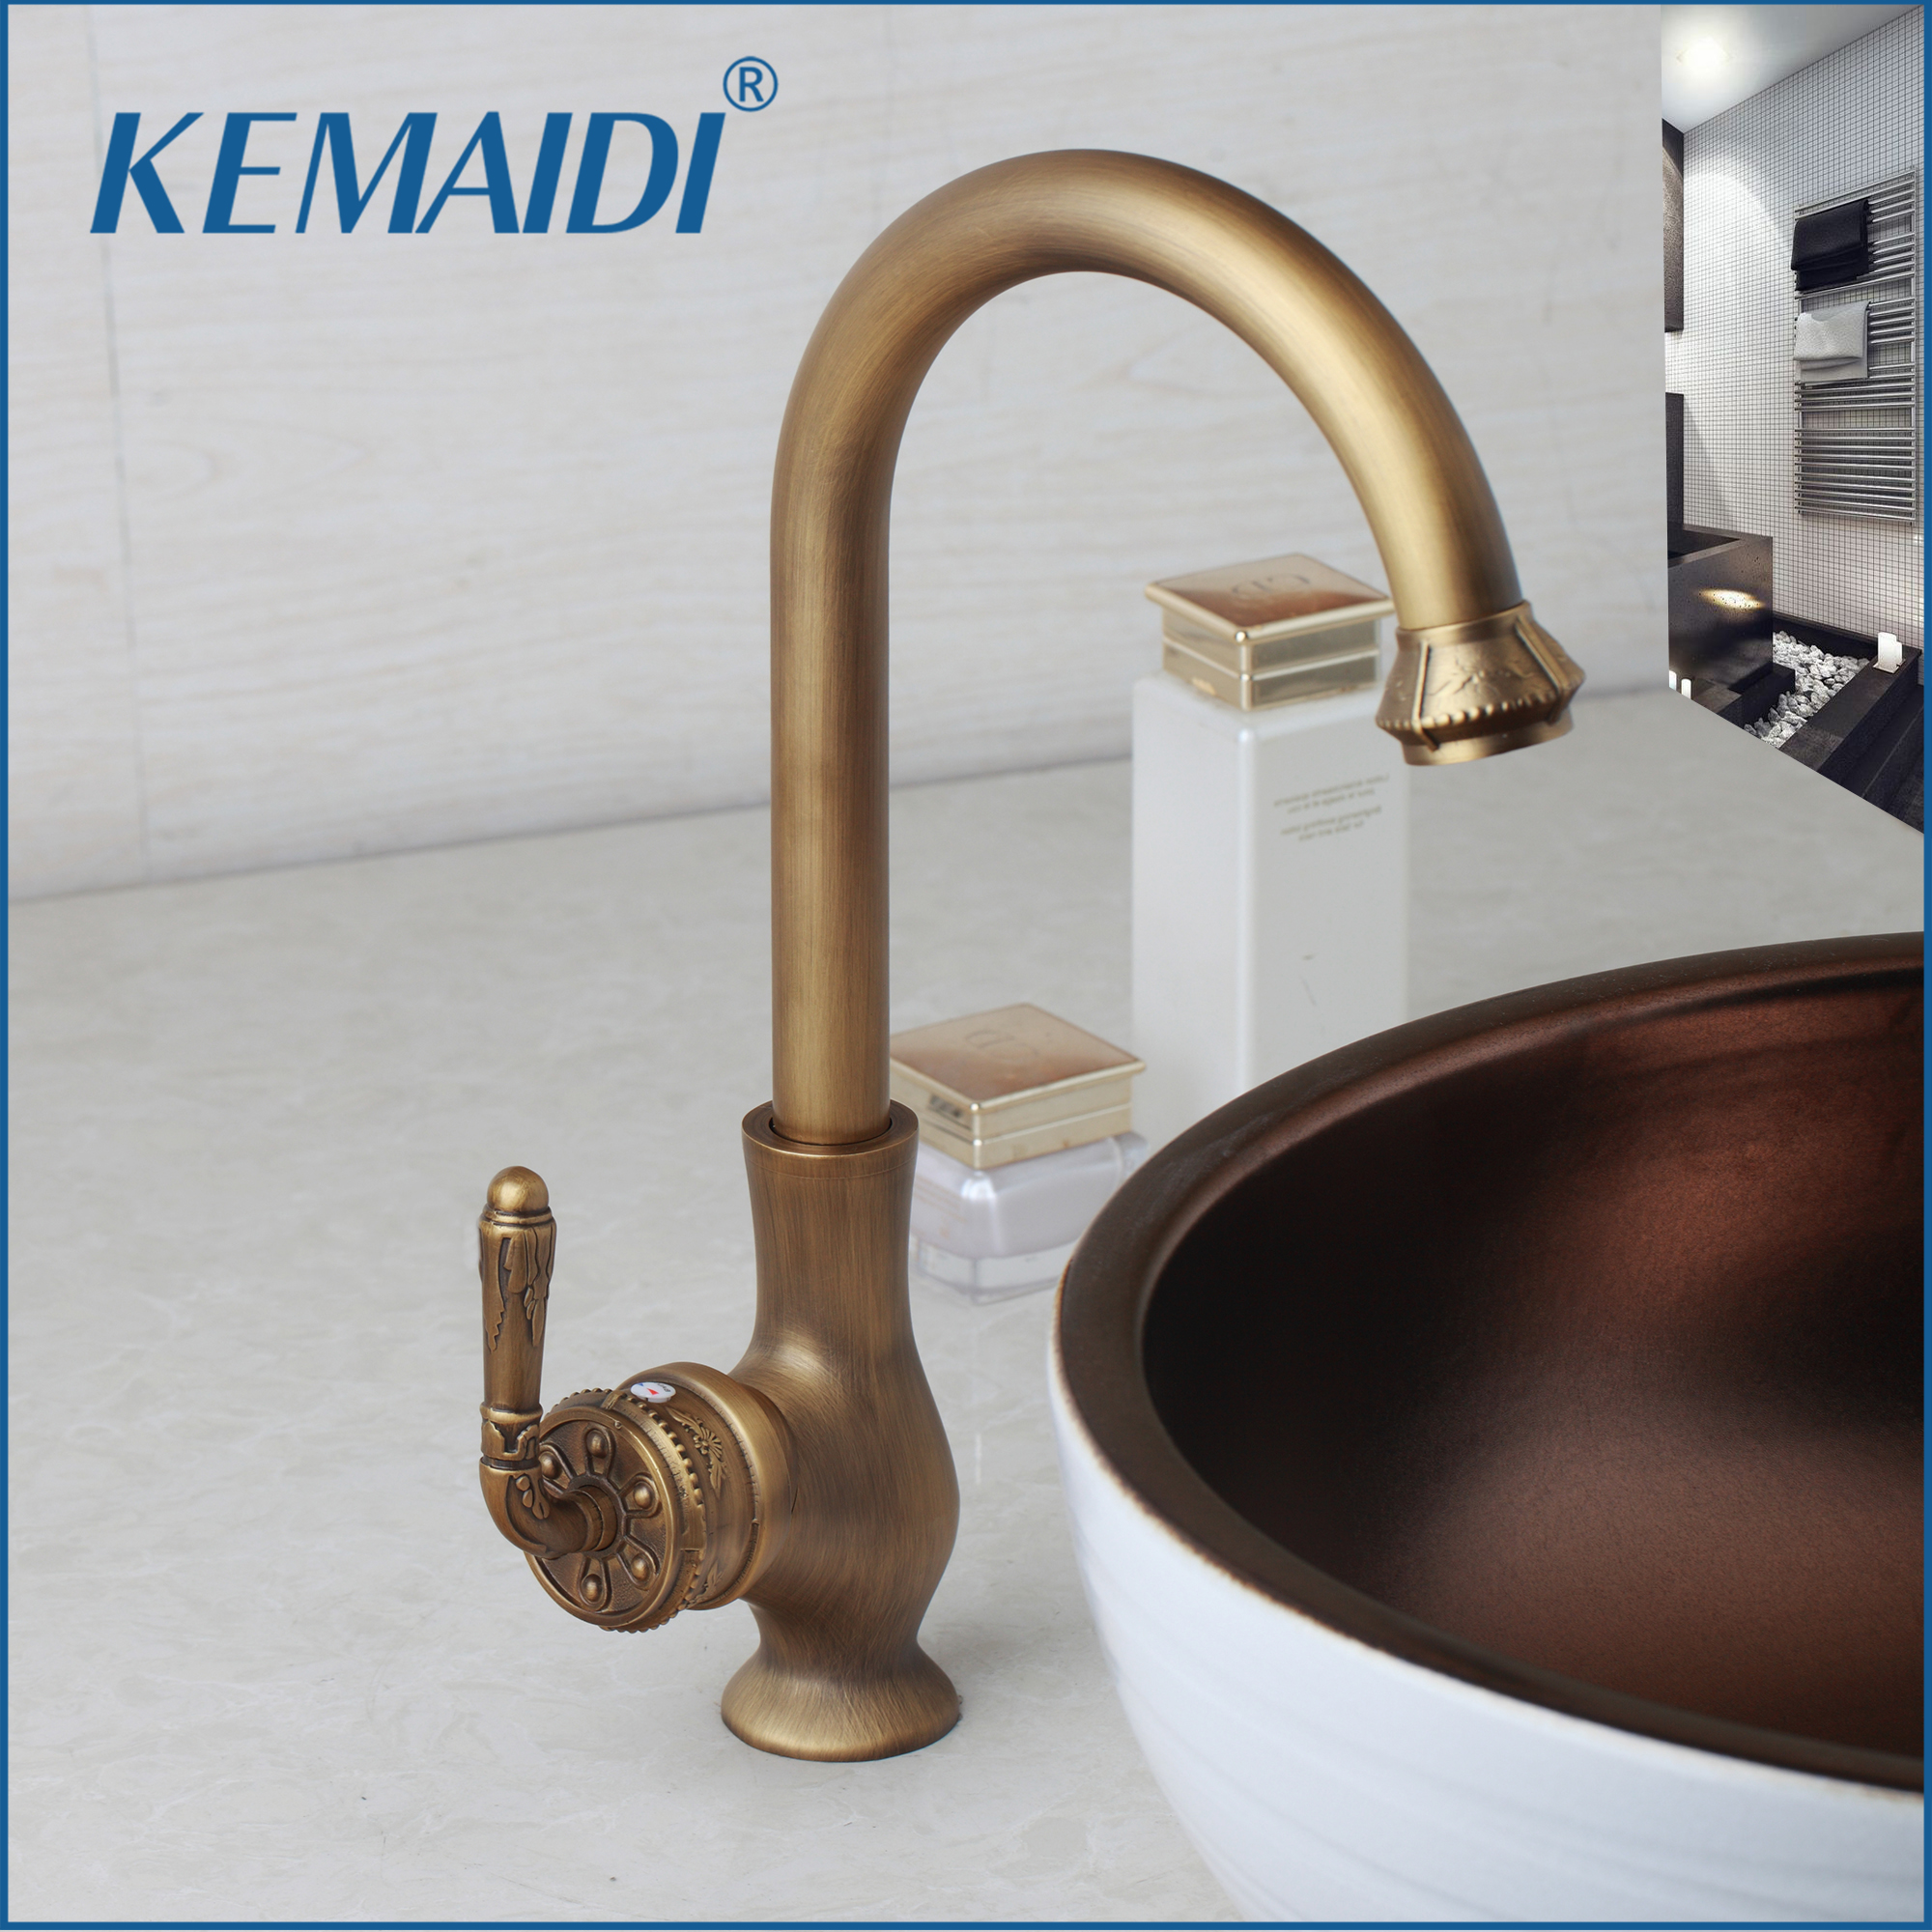 KEMAIDI Bathroom Faucet Tap Brass Basin Mixer Tap Faucet Vintage Engraved Handle Roatated Antique Brass Kitchen Sink Swivel kemaidi 3 pcs antique brass